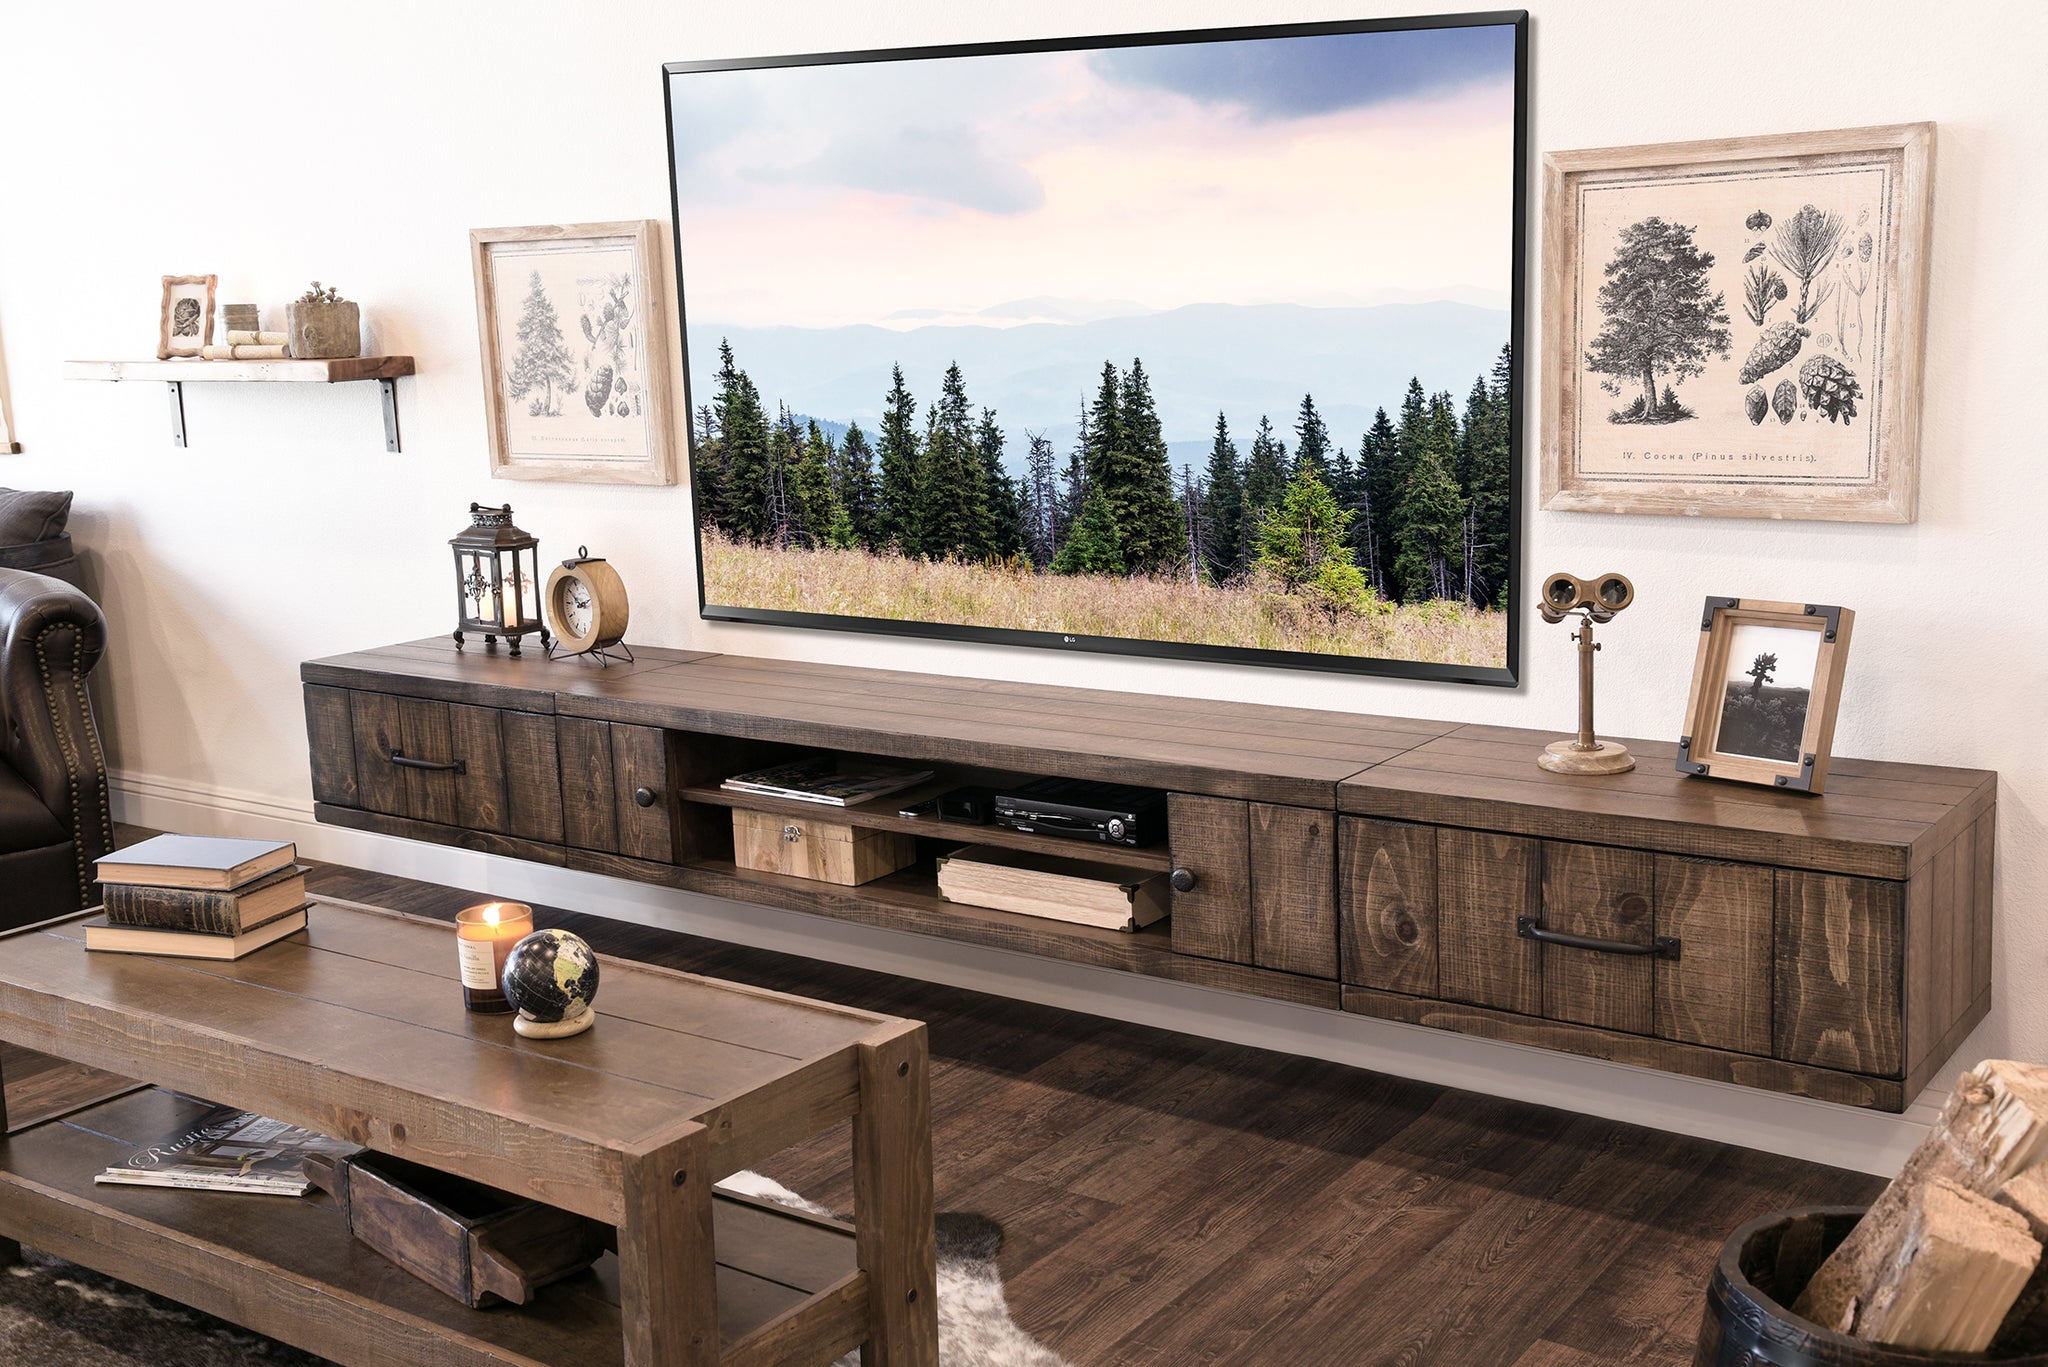 Farmhouse Rustic Wood Floating Tv Stand Entertainment